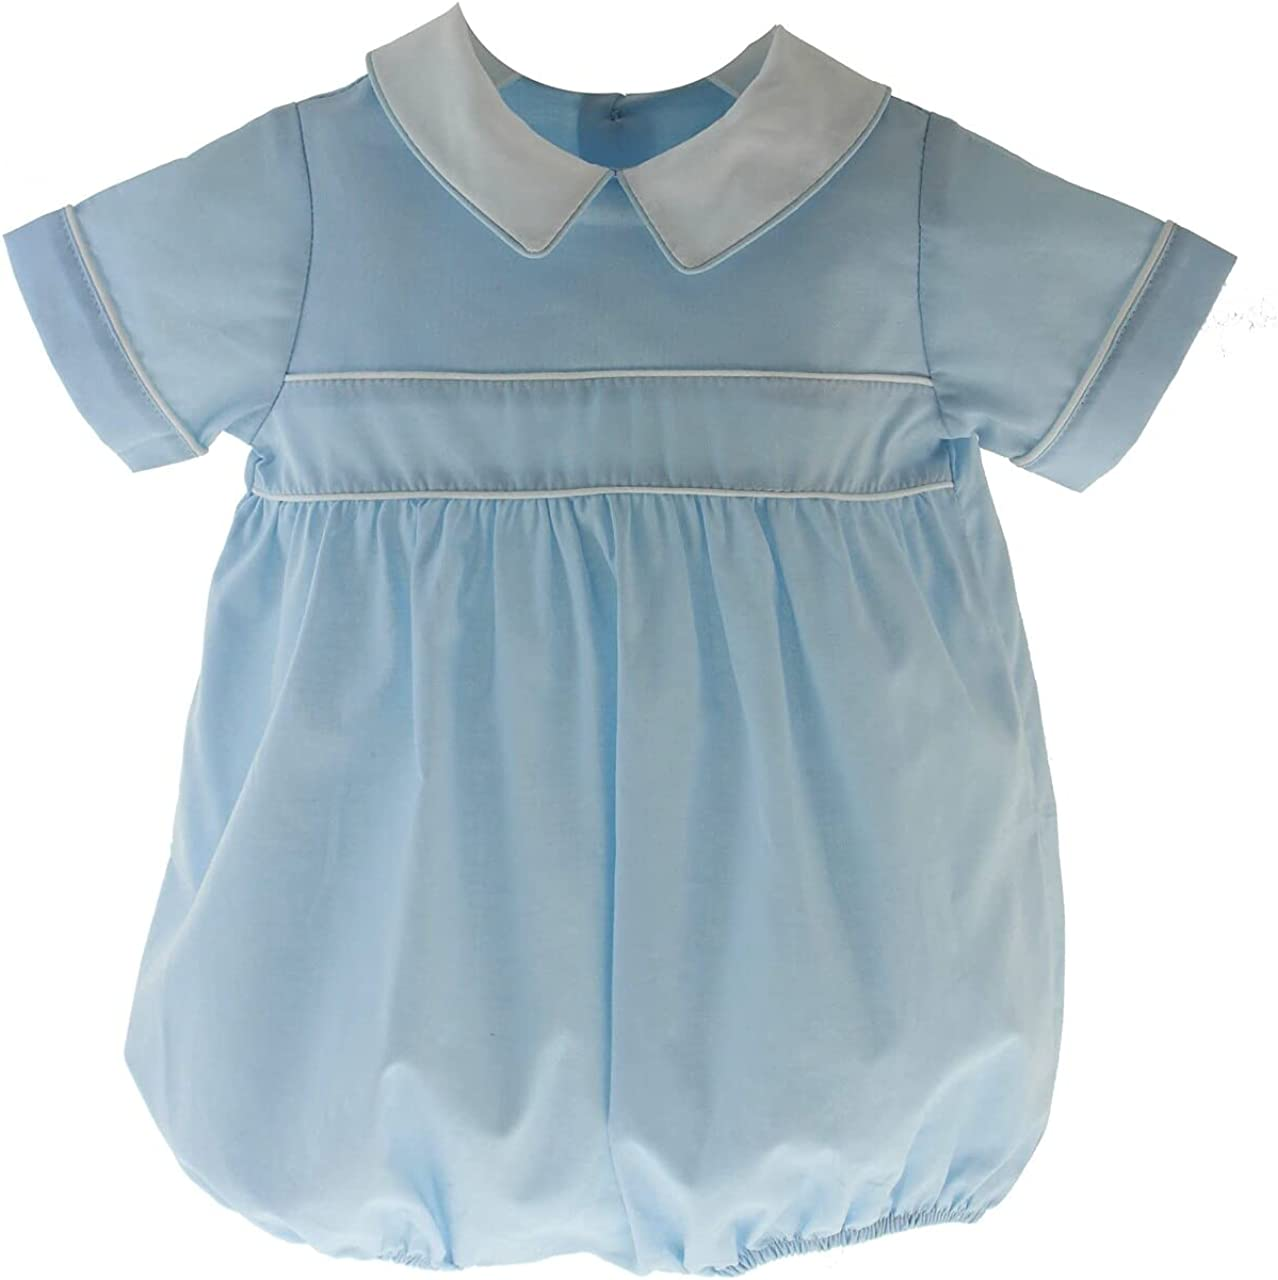 Baby Boys Vintage Style Bubble Romper Blessing Outfit Boys Baptism Outfit Baby Blue Linen Romper Dedication Outfit Baby Shower Gift